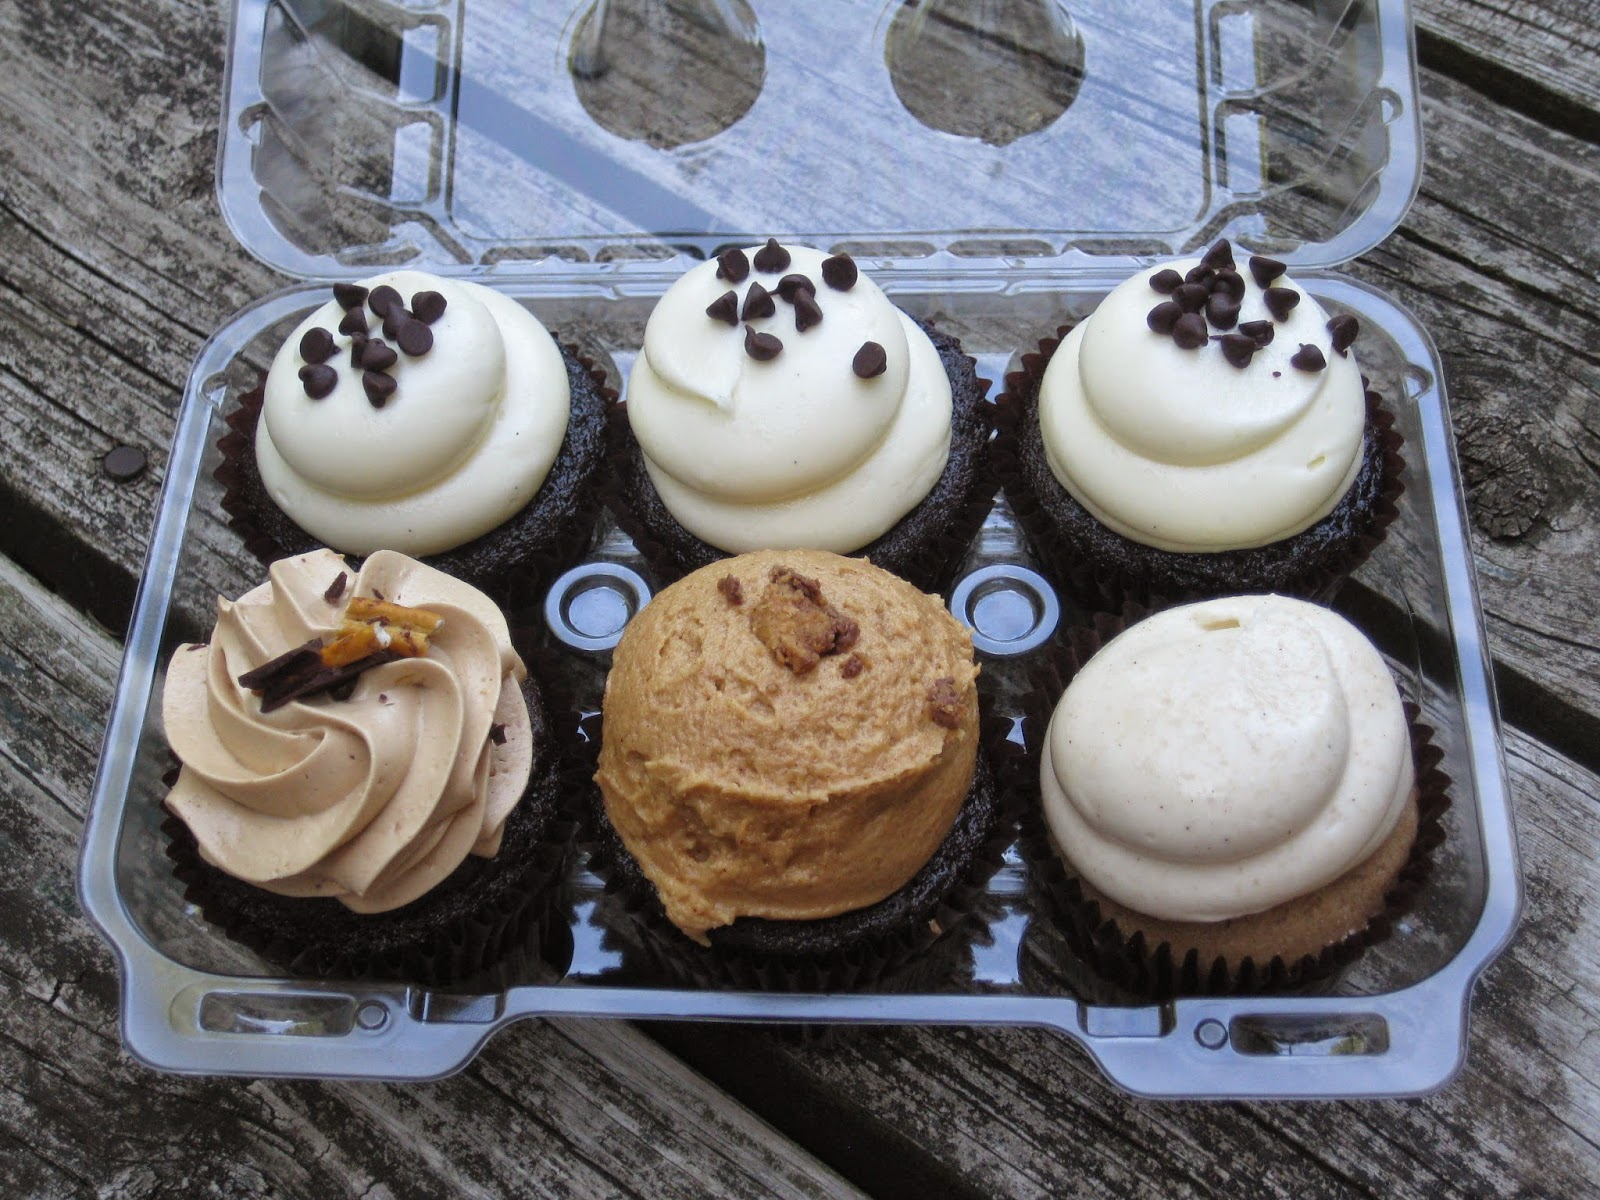 1/2 dozen cupcakes from Flavory Cupcakery